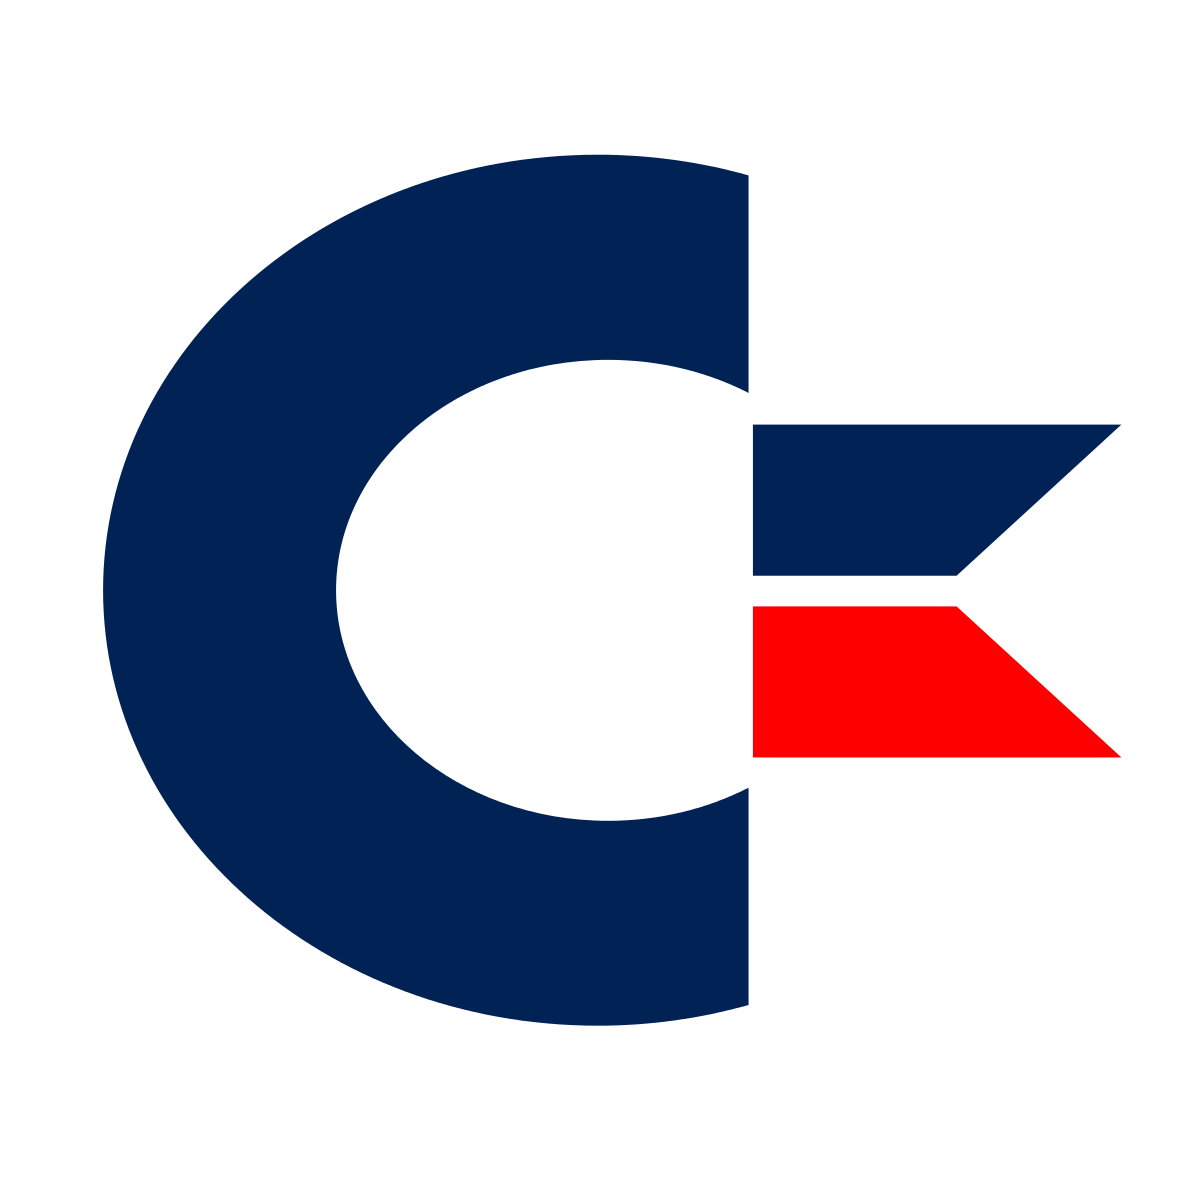 Commodore international wikipedia . Factories clipart industry profile